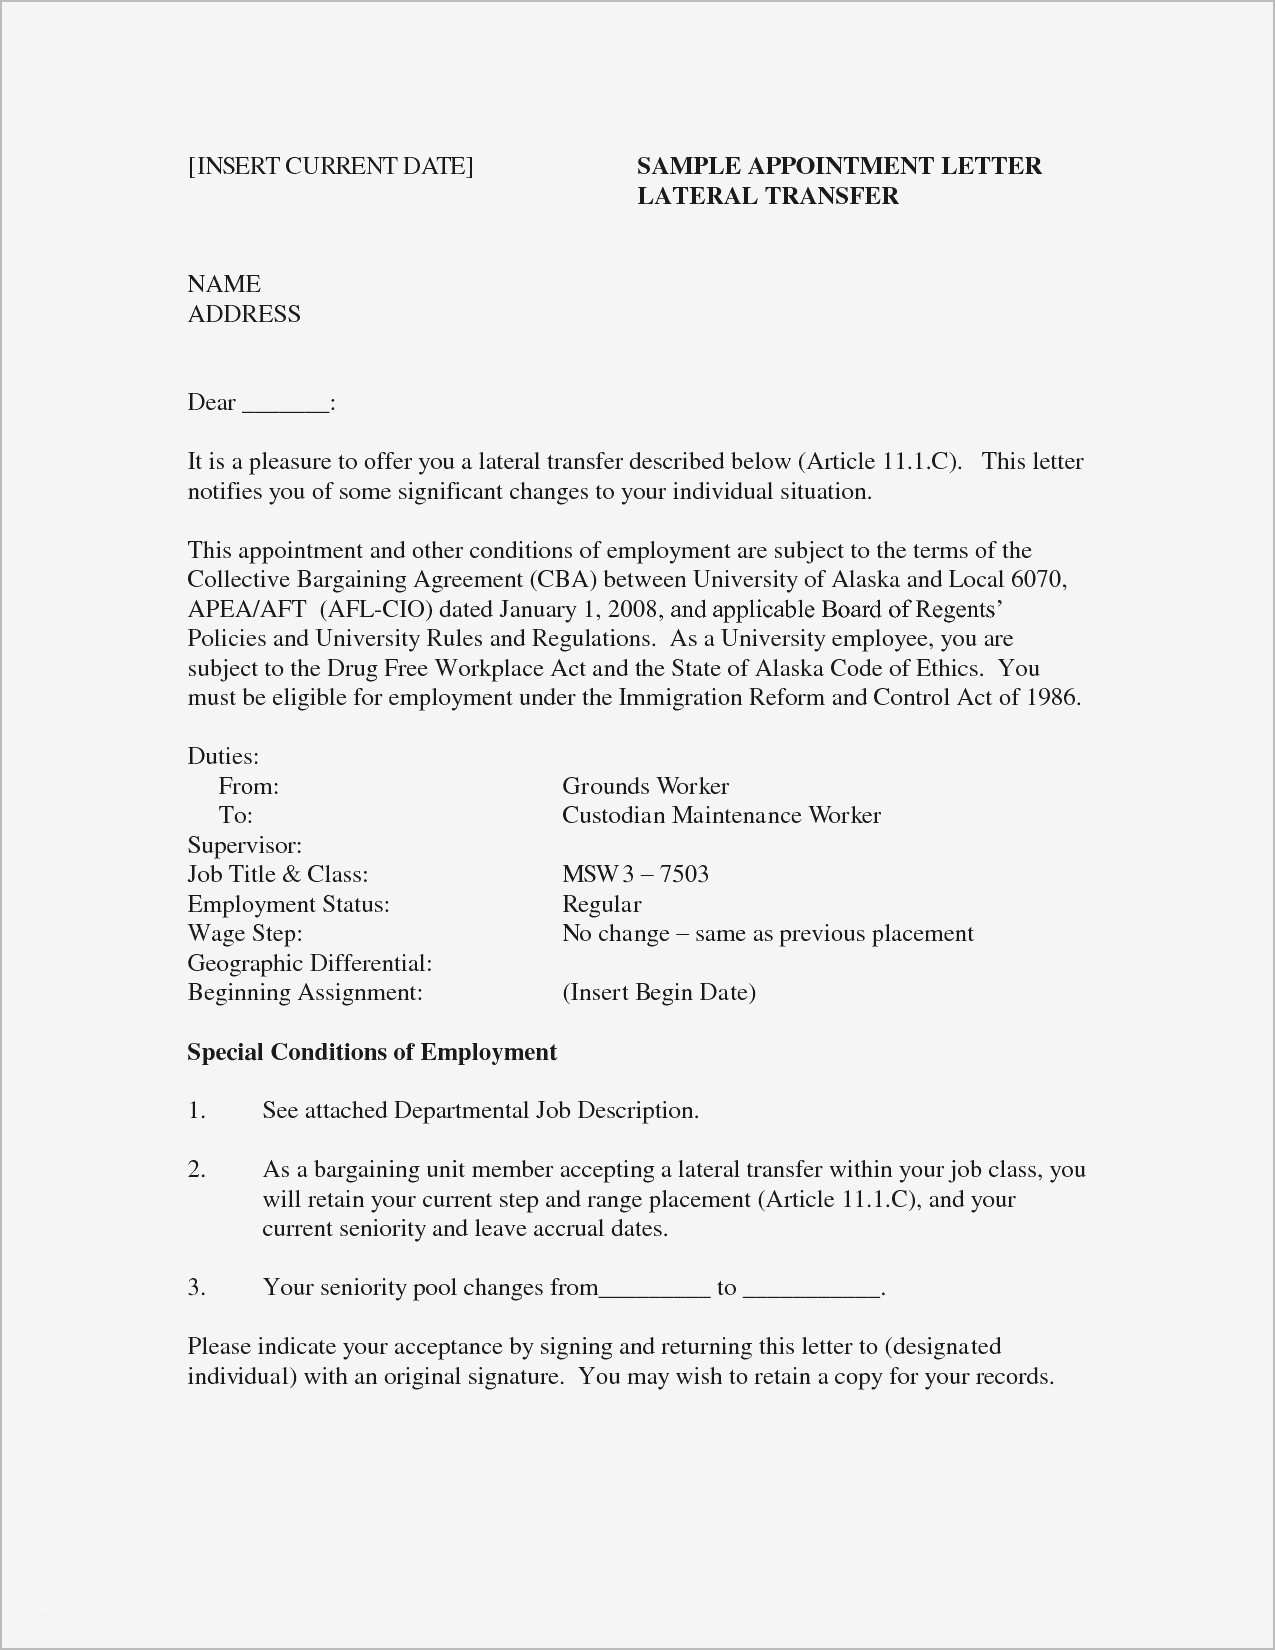 Writing A Resume Summary - Rofessional Summary Resume Best Summary Examples for Resume